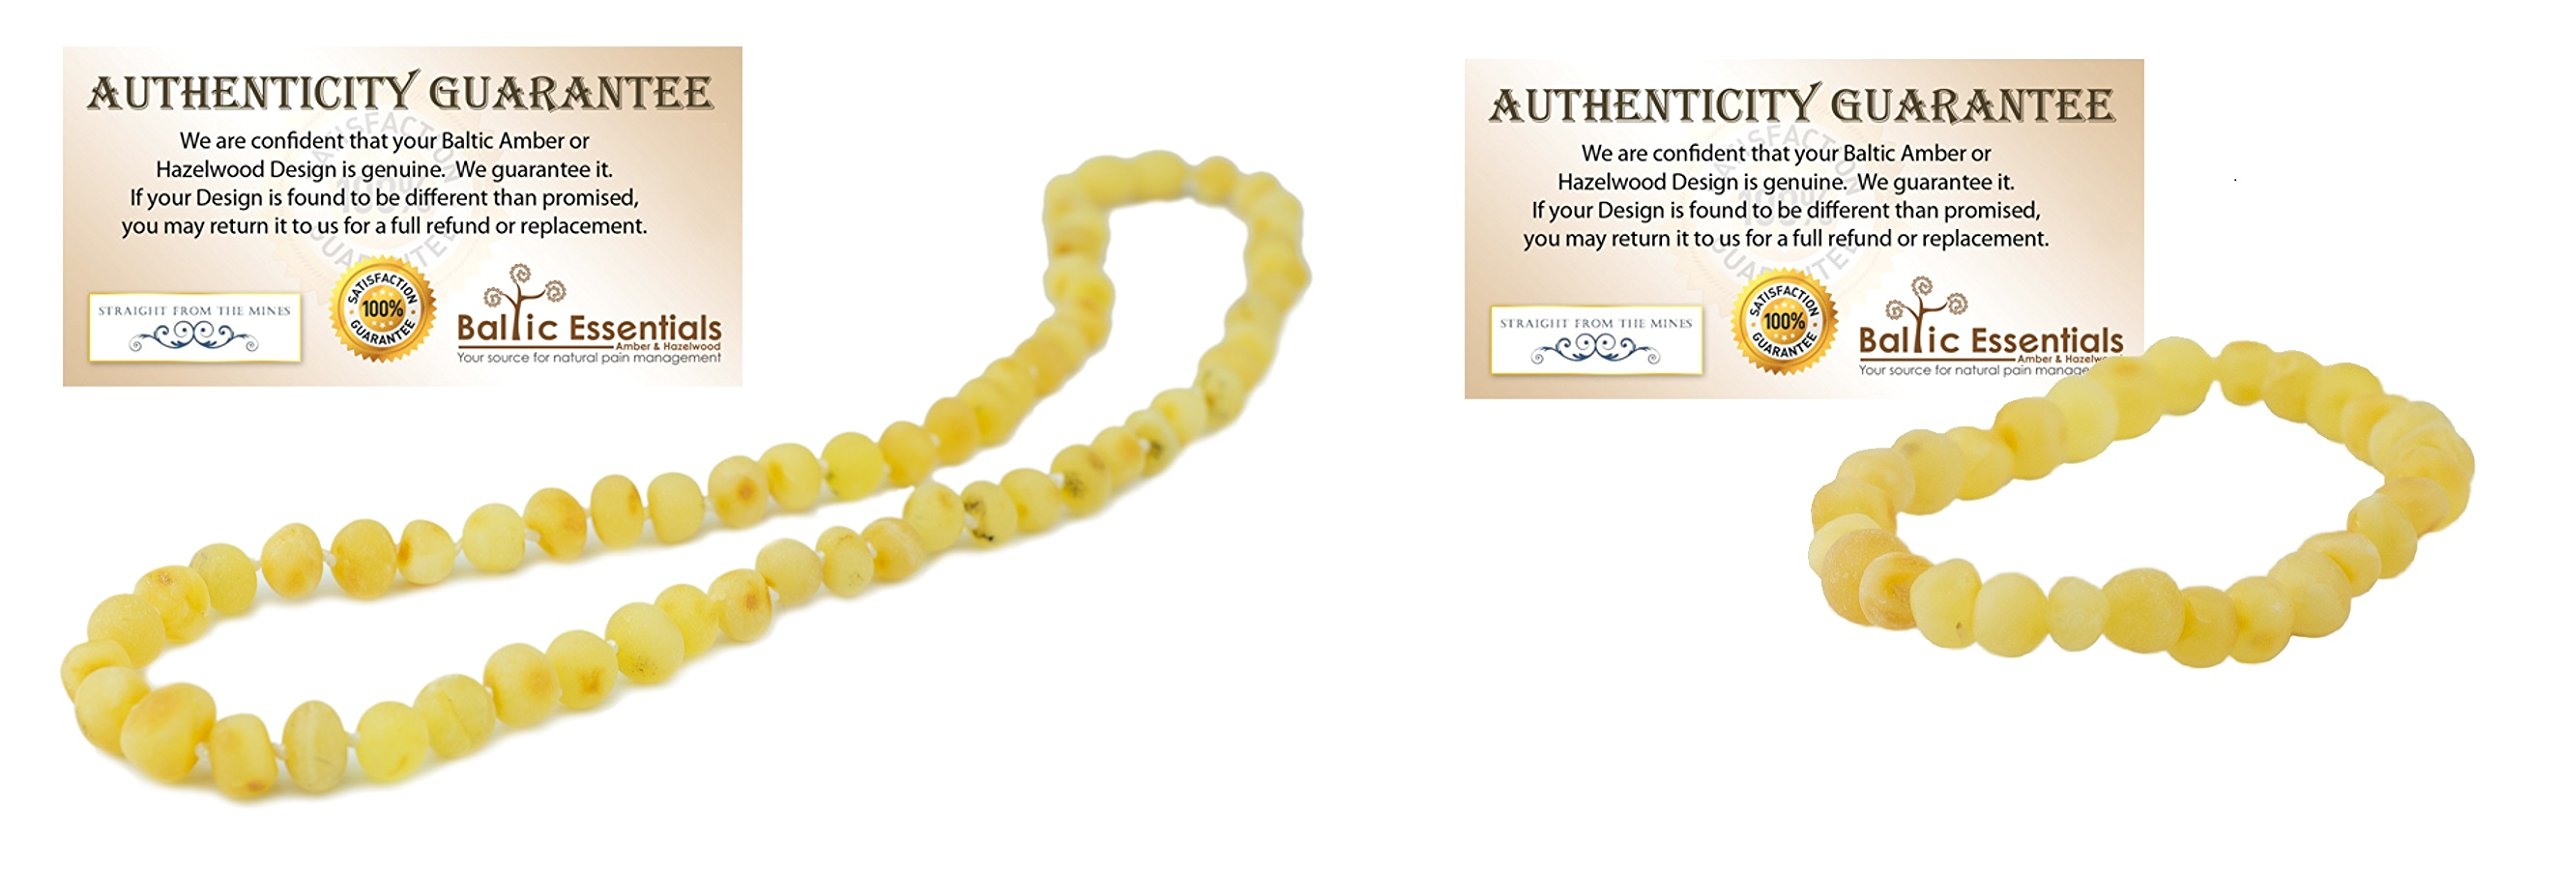 Baltic Essentials 11 Inch Raw Lemon Amber Necklace, Screw clasp Teething Necklace for Infant, Baby Drooling & Teething, Growing pains, Reduce Properties -Natural Certified (Necklace-Bracelet-SET) by Baltic Essentials